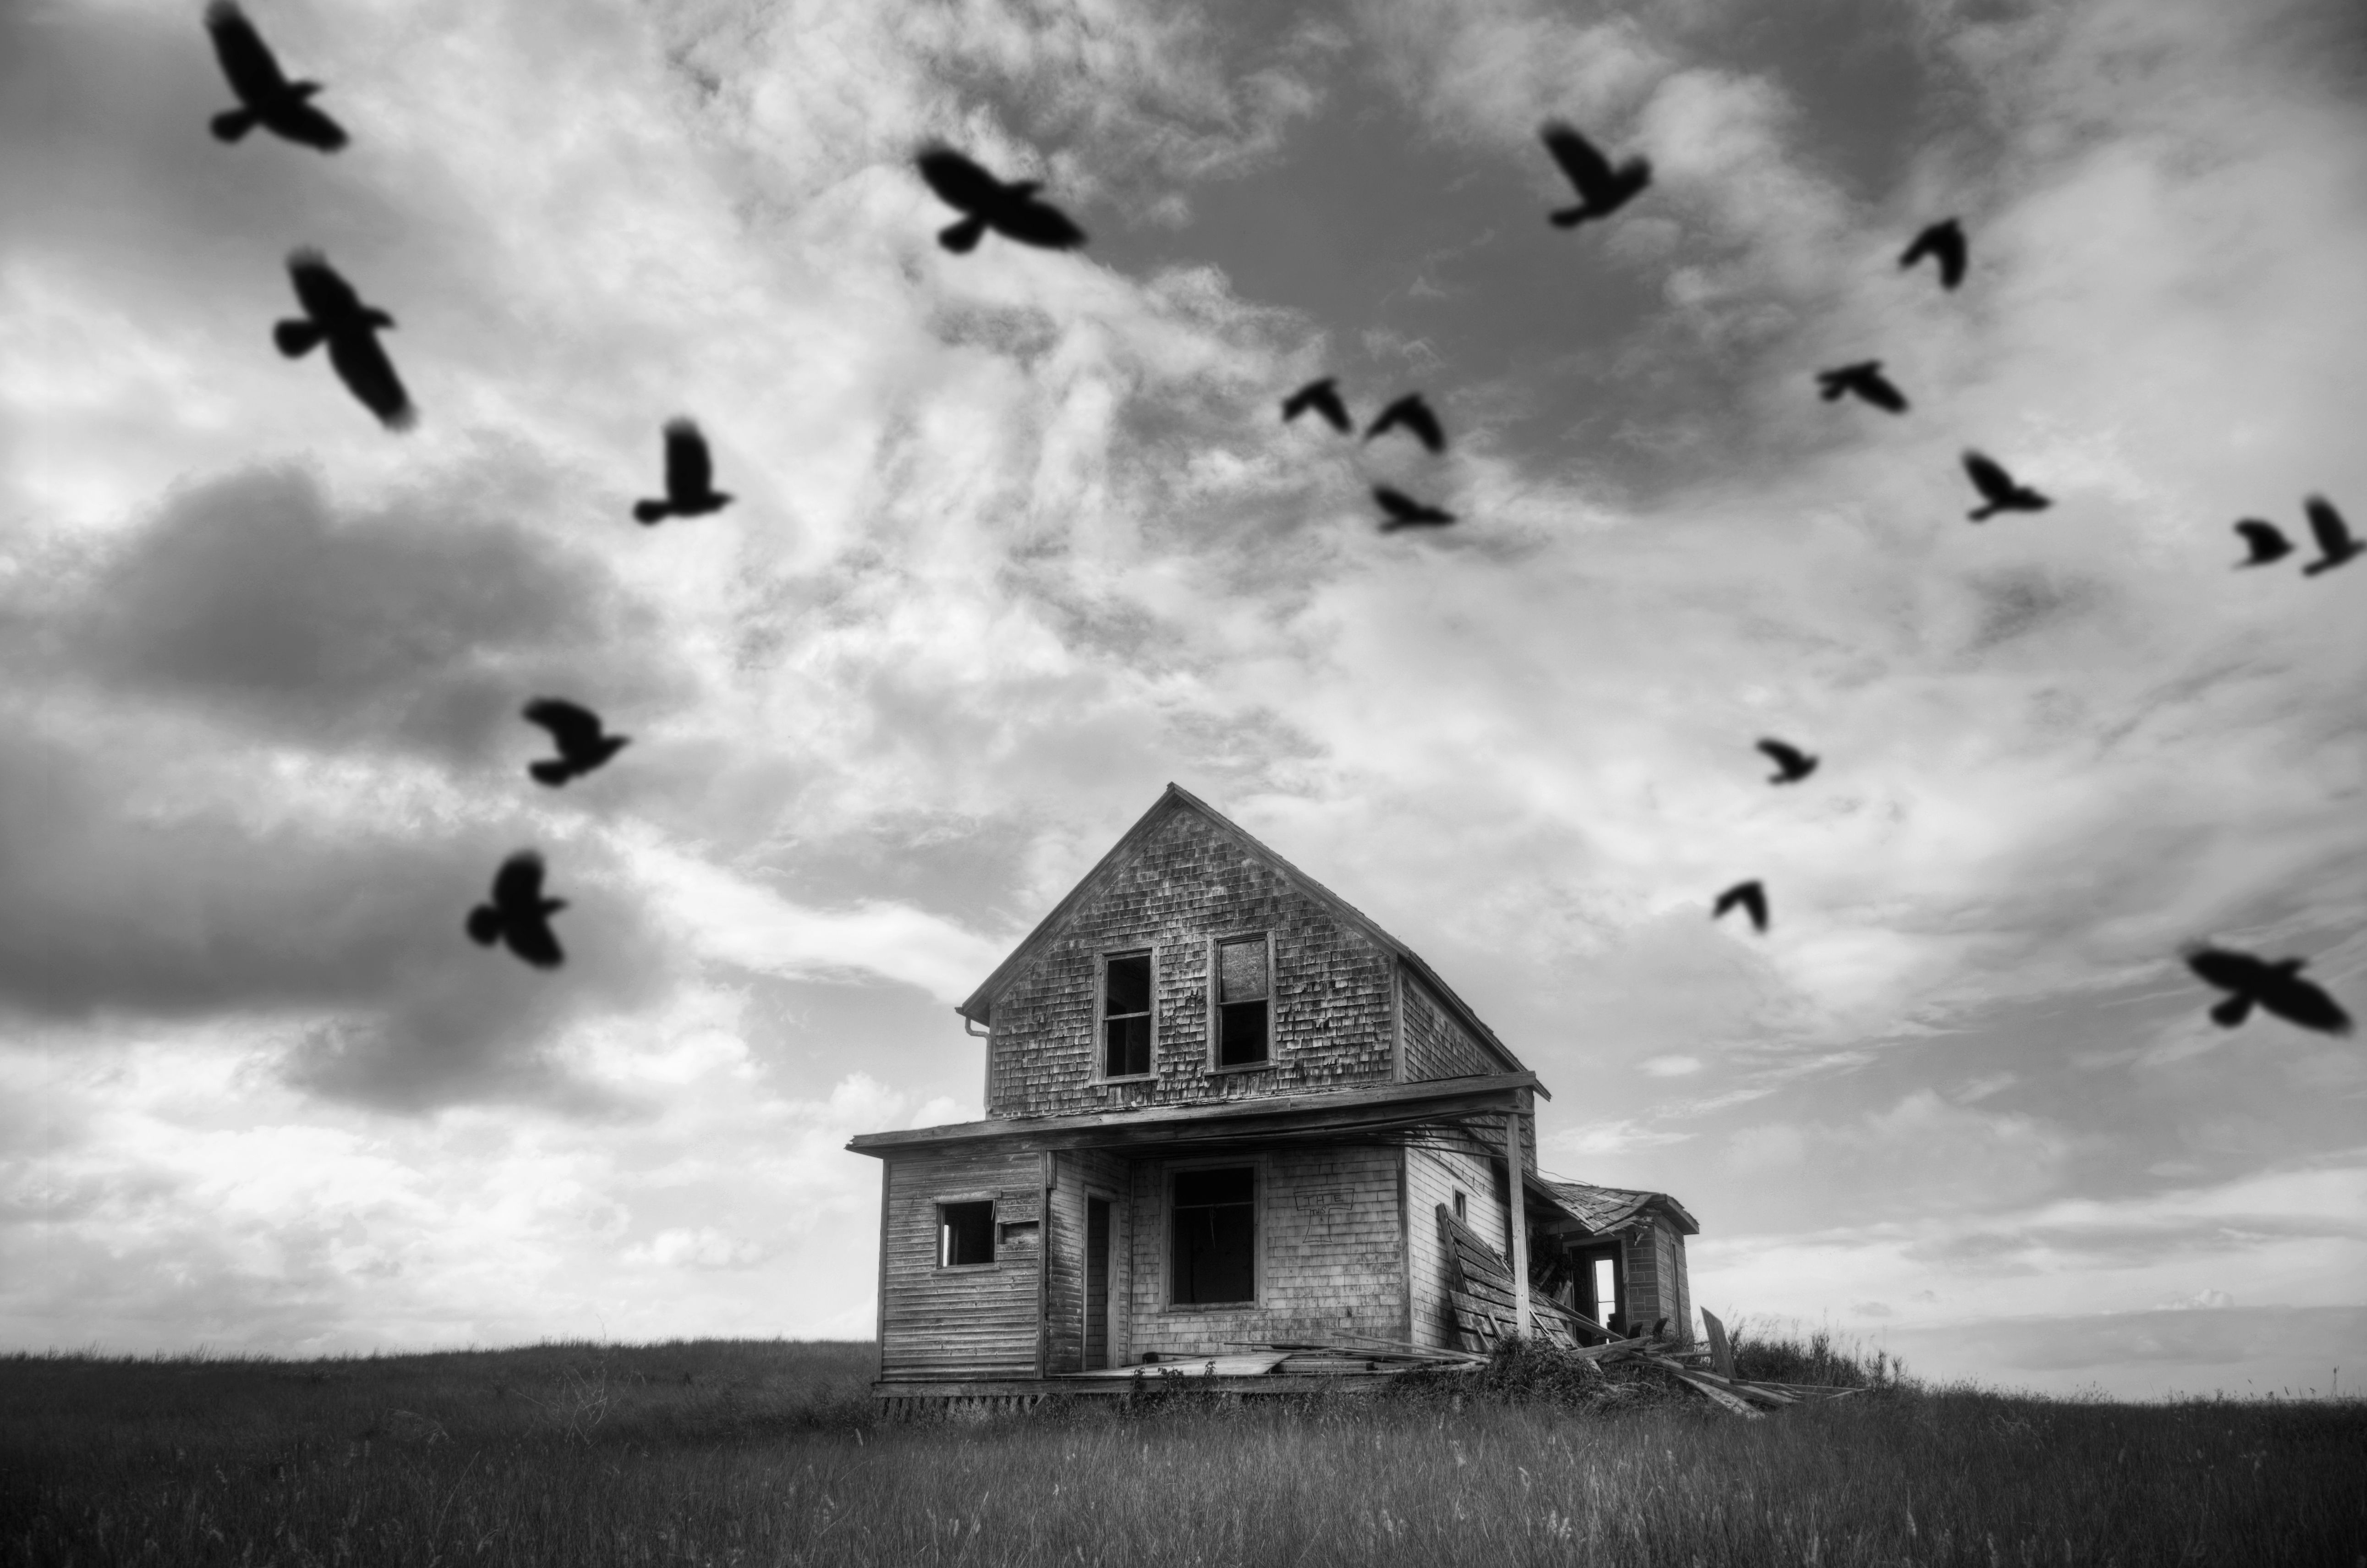 Birds flying over a scary house